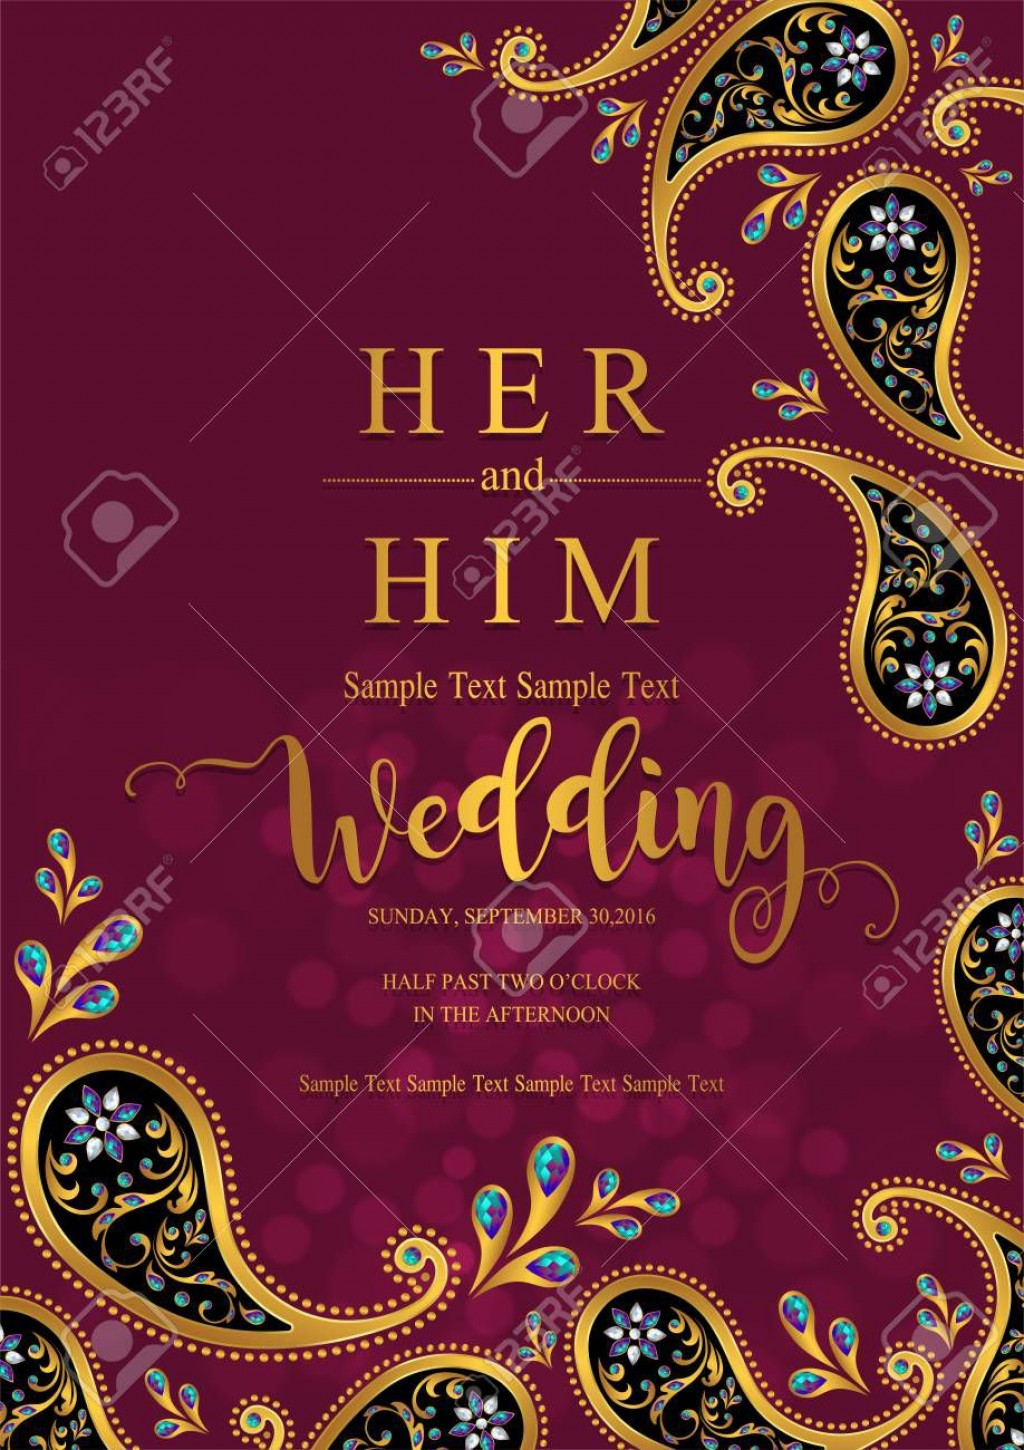 002 Surprising Indian Wedding Invitation Template Highest Quality  Psd Free Download Marriage Online For FriendLarge